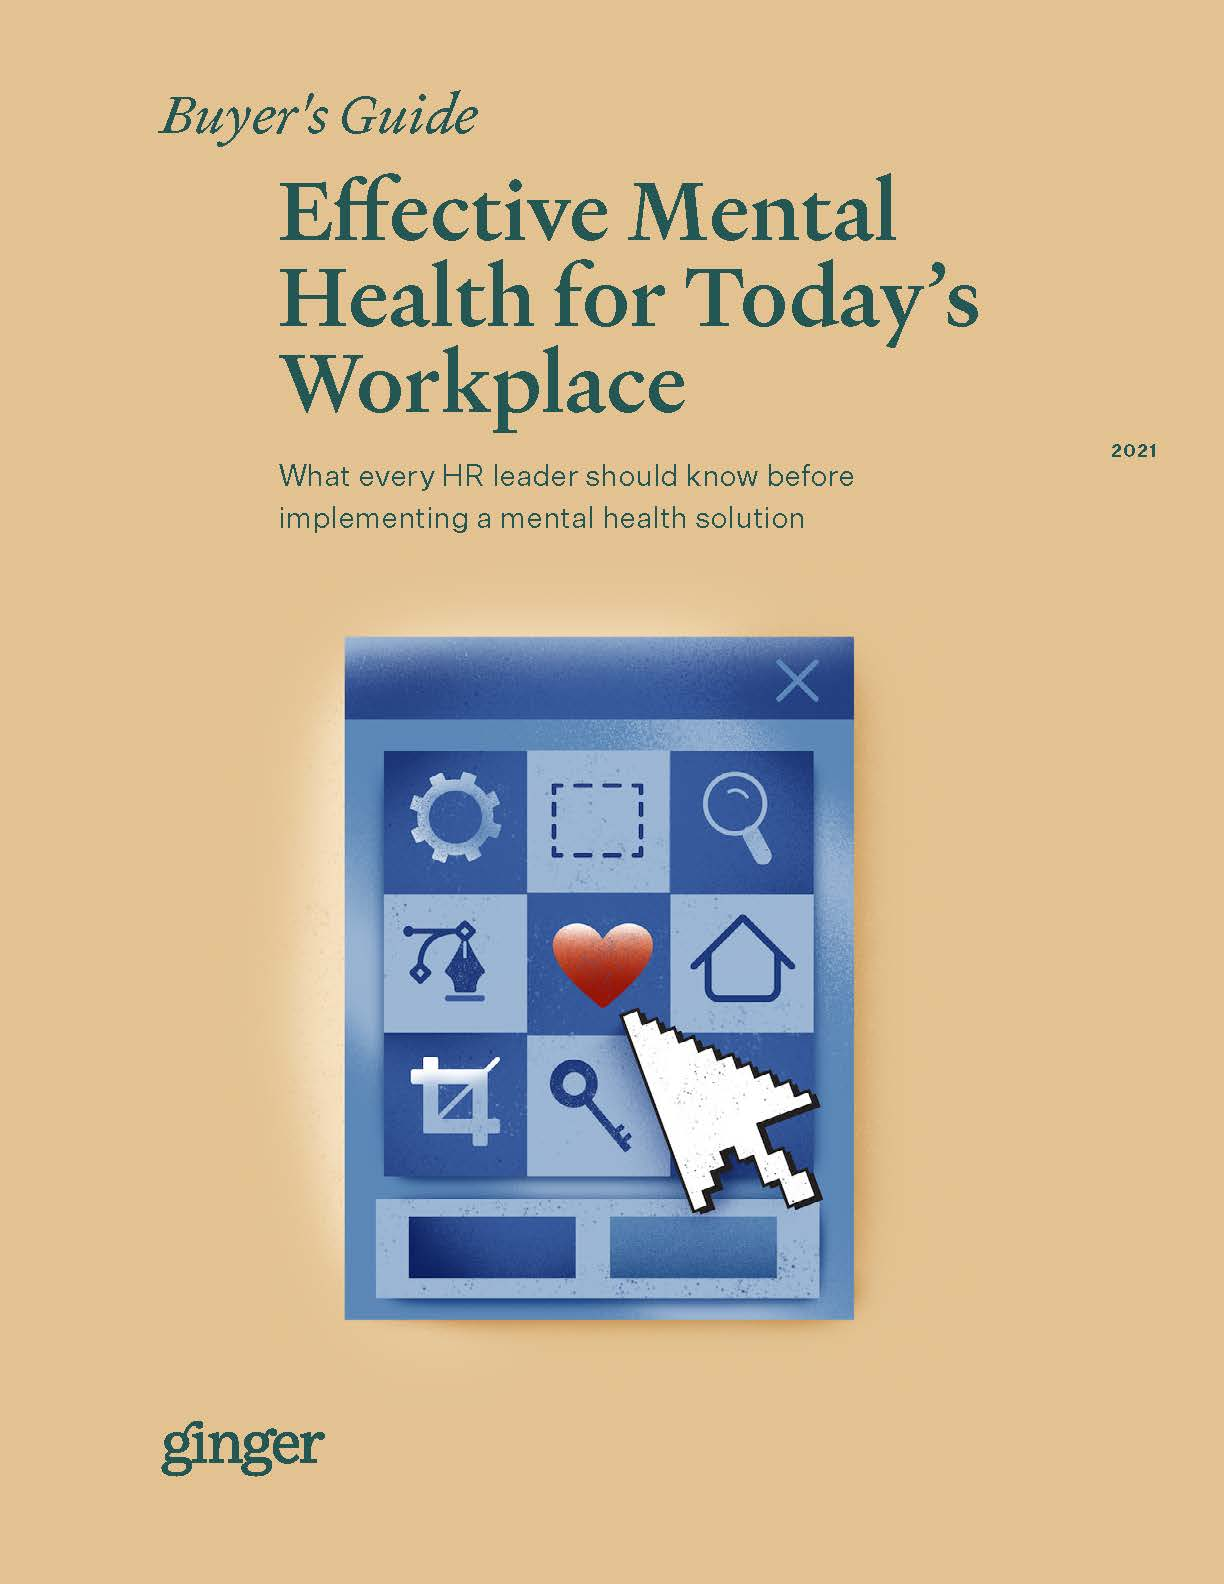 Effective Mental Health for Today's Workplace